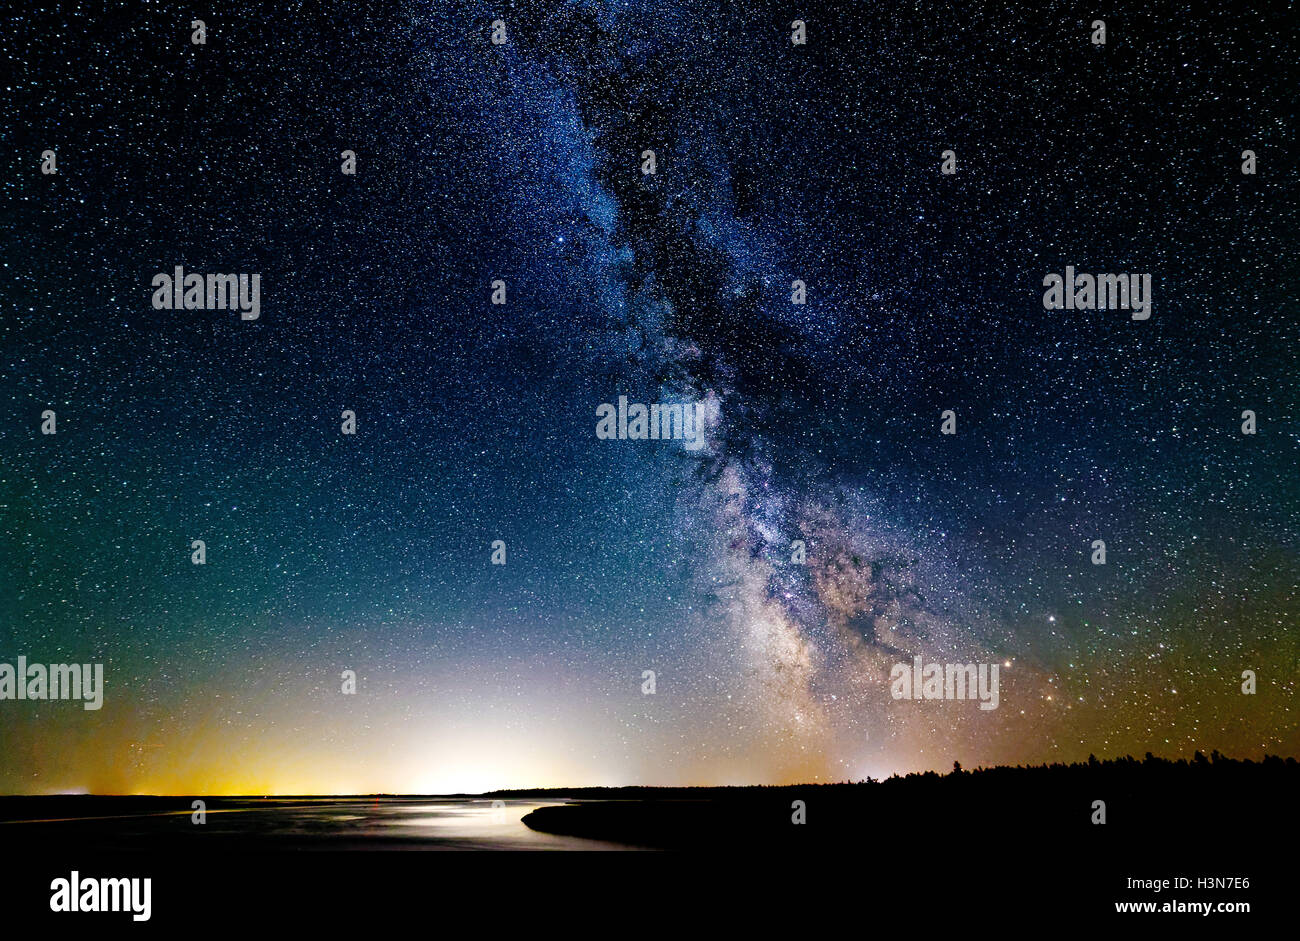 the-milky-way-in-dark-skies-in-kouchibouguac-national-park-in-new-H3N7E6.jpg